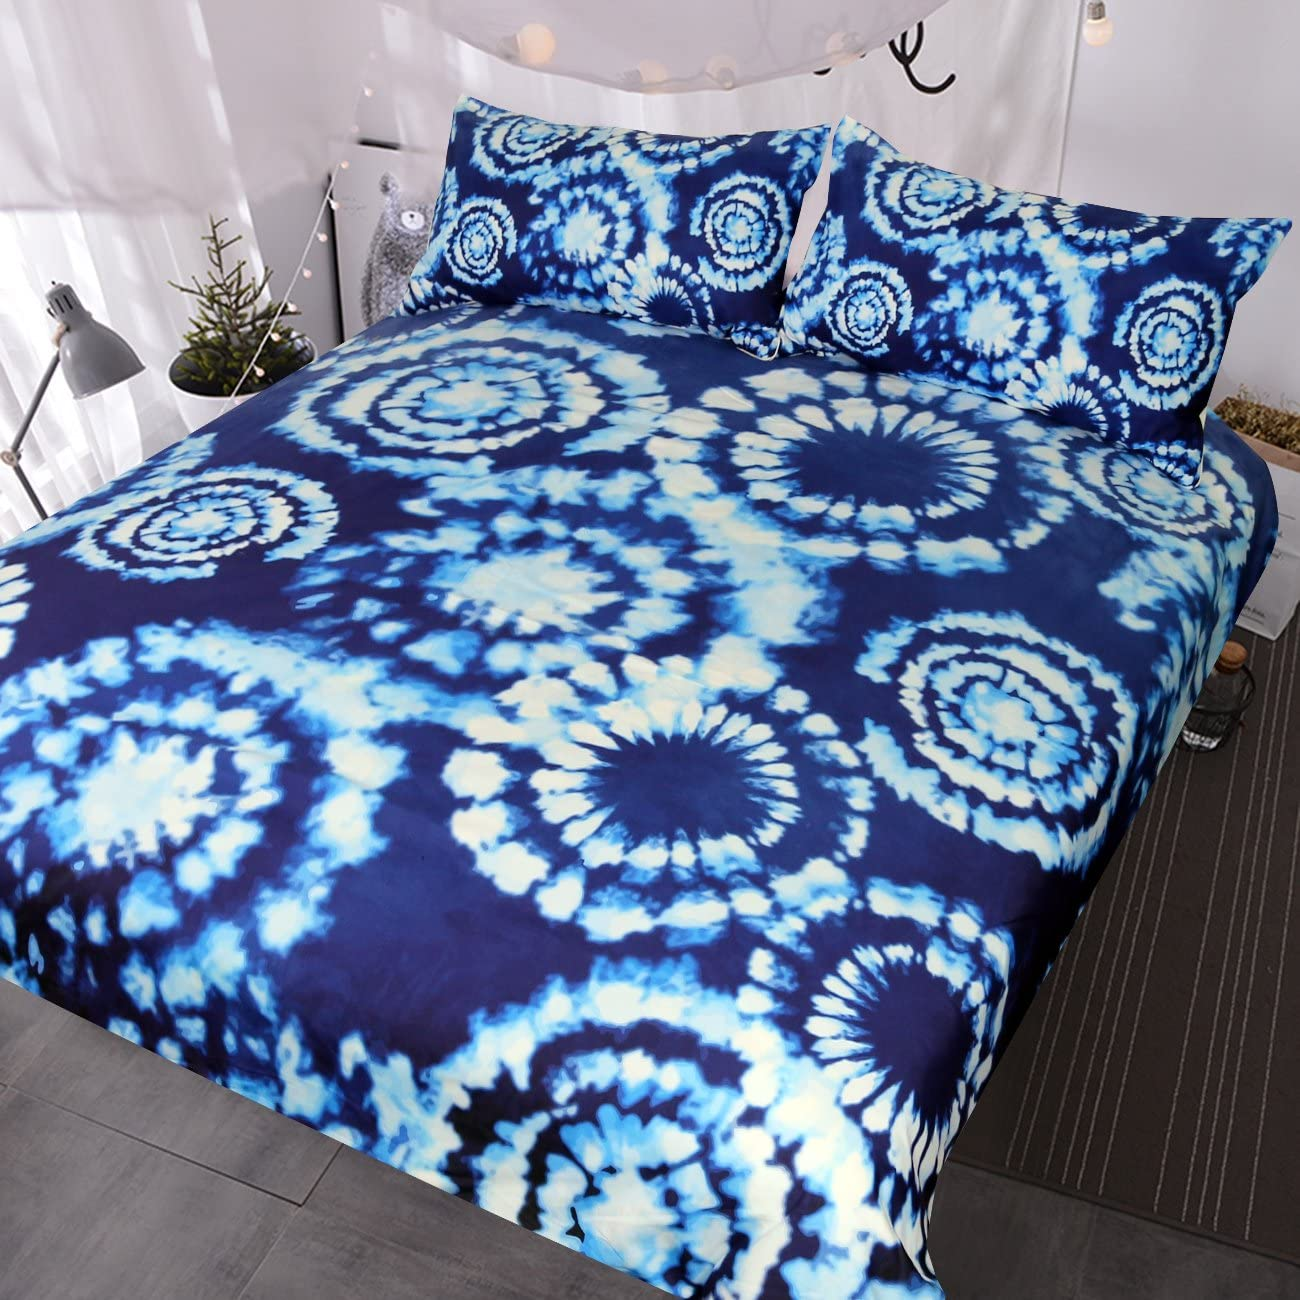 BlessLiving 3 Pcs Blue Tie Dye Bedding Boho Indigo Tie Die Bedspreads Chic Blue and White Tie-Dyed Duvet Cover (Twin)